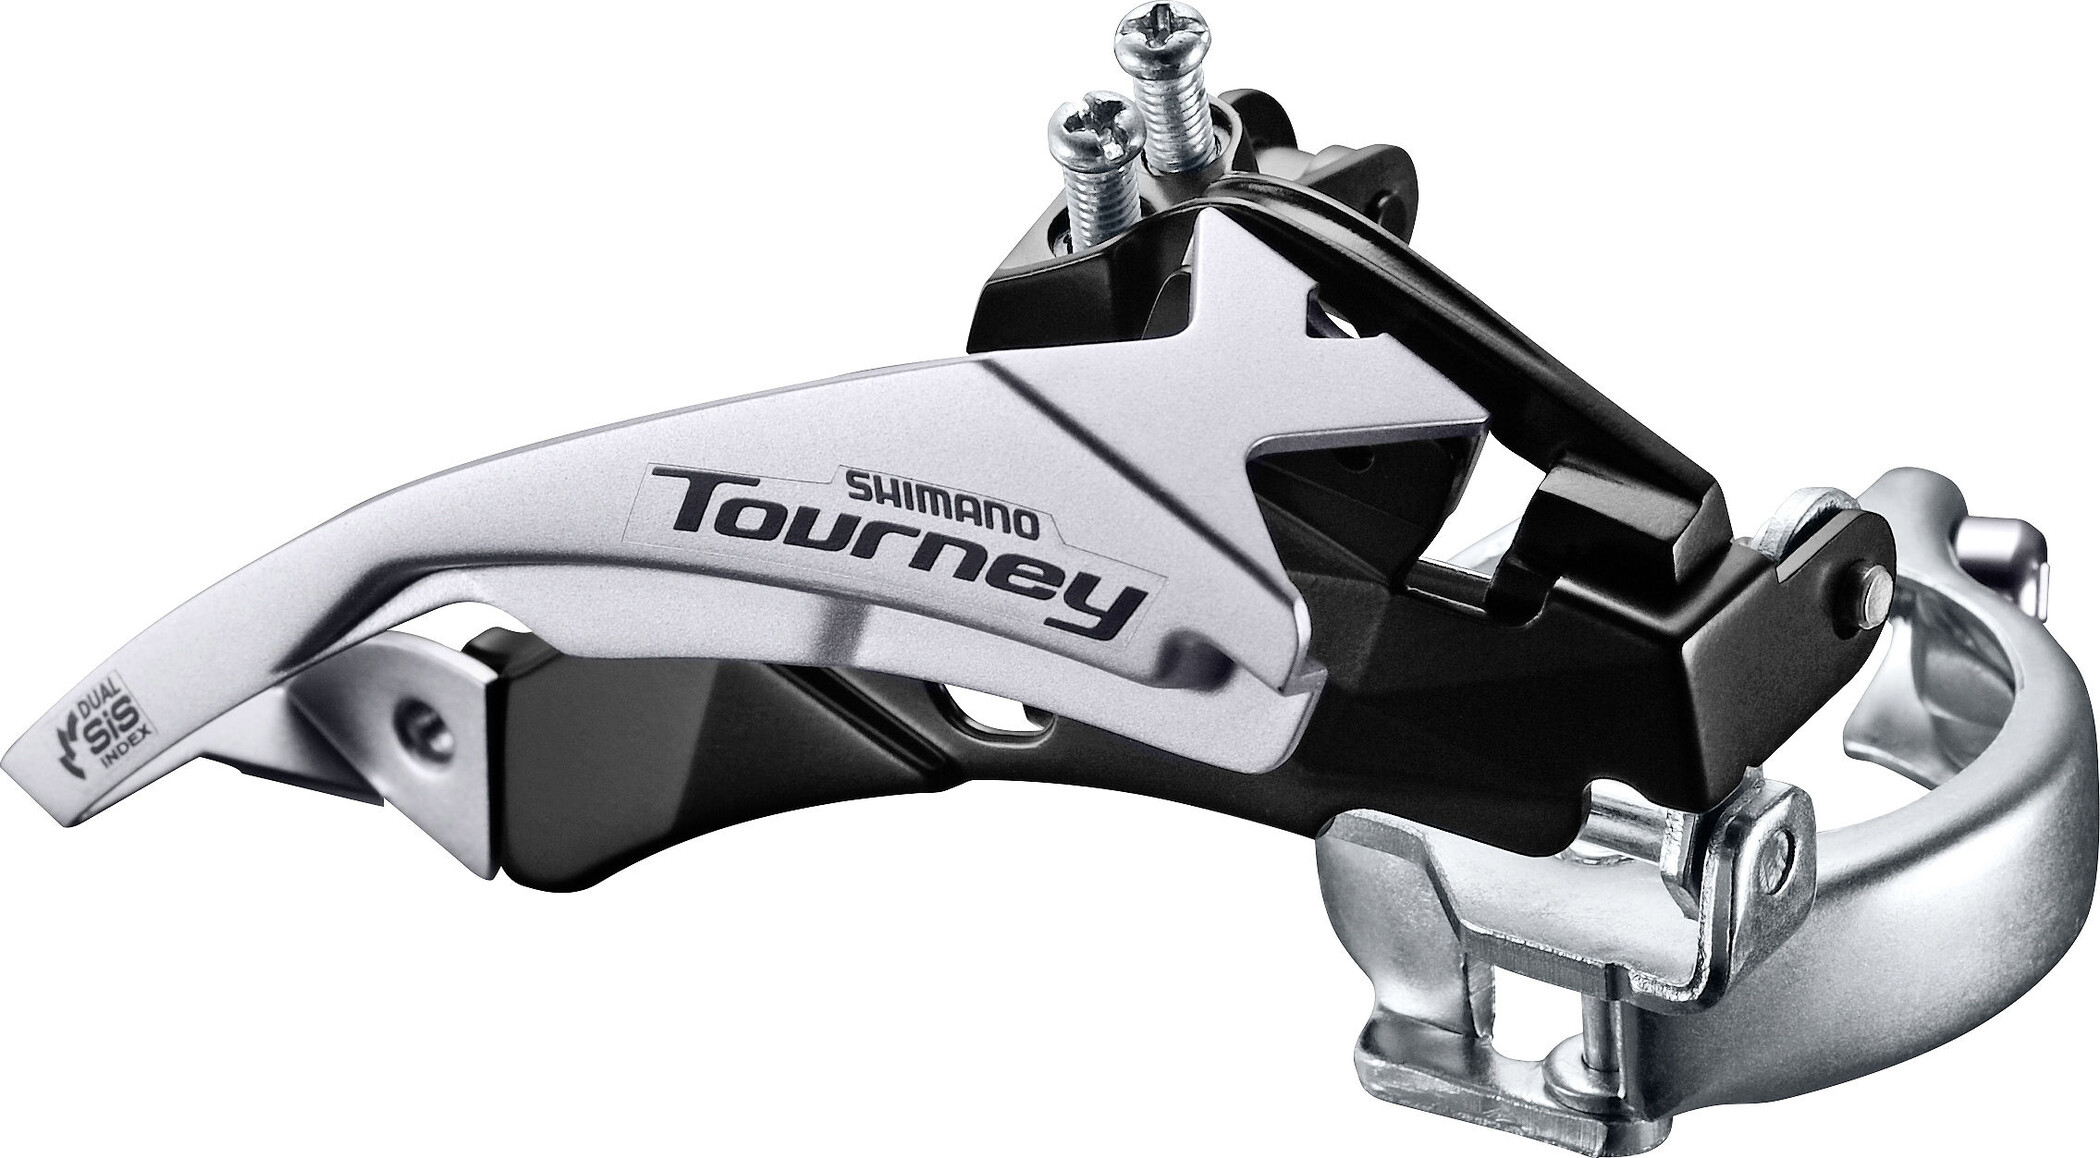 Shimano Tourney FD-TY500 Forskifter Top Swing 66-69° 6/7-speed (2019) | Front derailleur